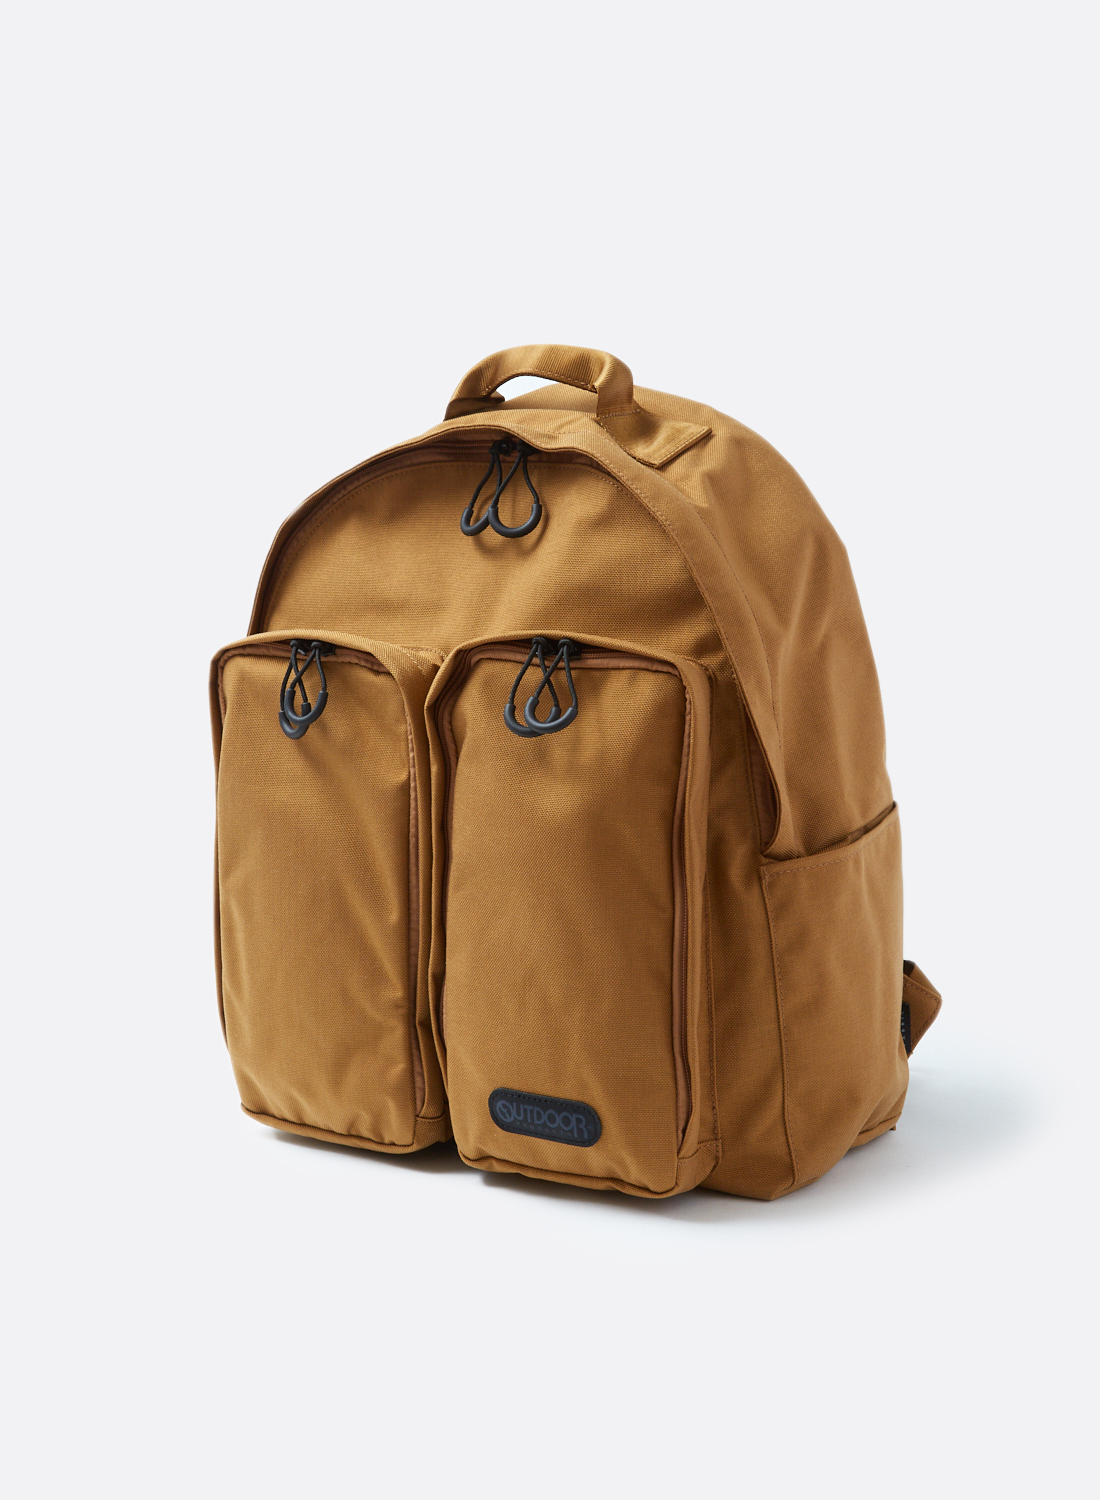 BAL/OUTDOOR PRODUCTS® DOUBLE POCKET BACK PACK -bal flagship store Exclusive Color-